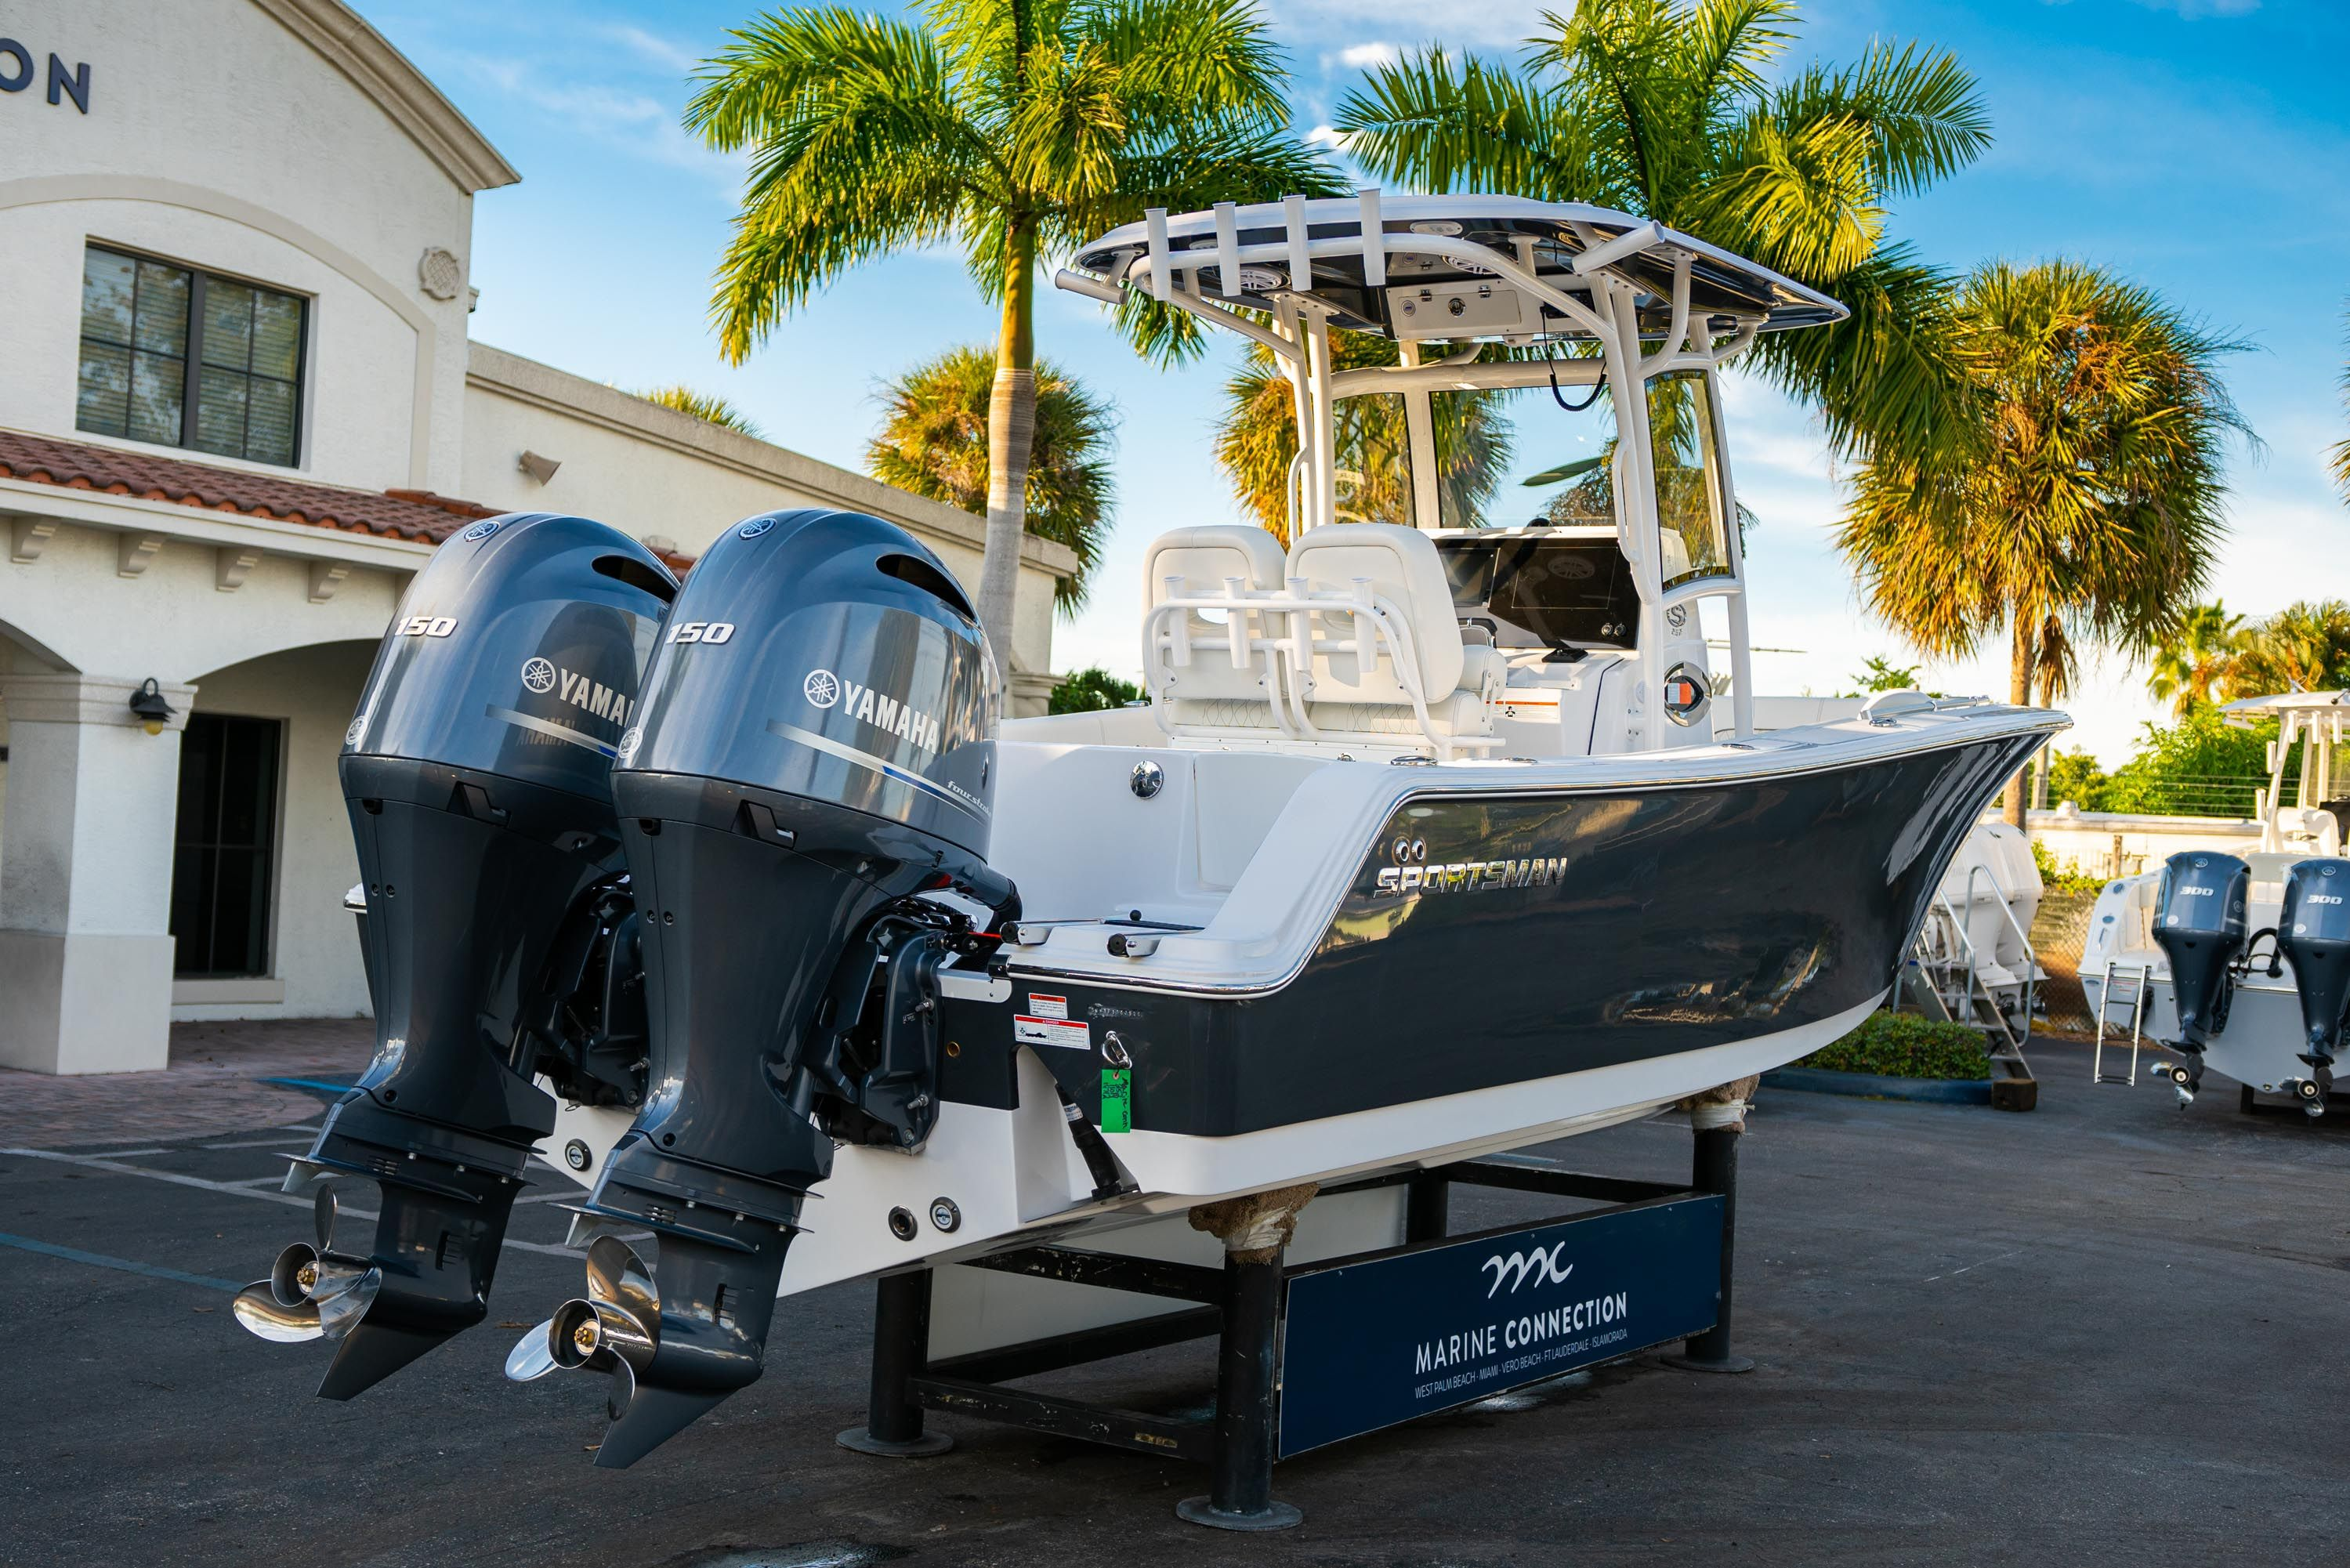 Thumbnail 7 for New 2020 Sportsman Open 252 Center Console boat for sale in West Palm Beach, FL